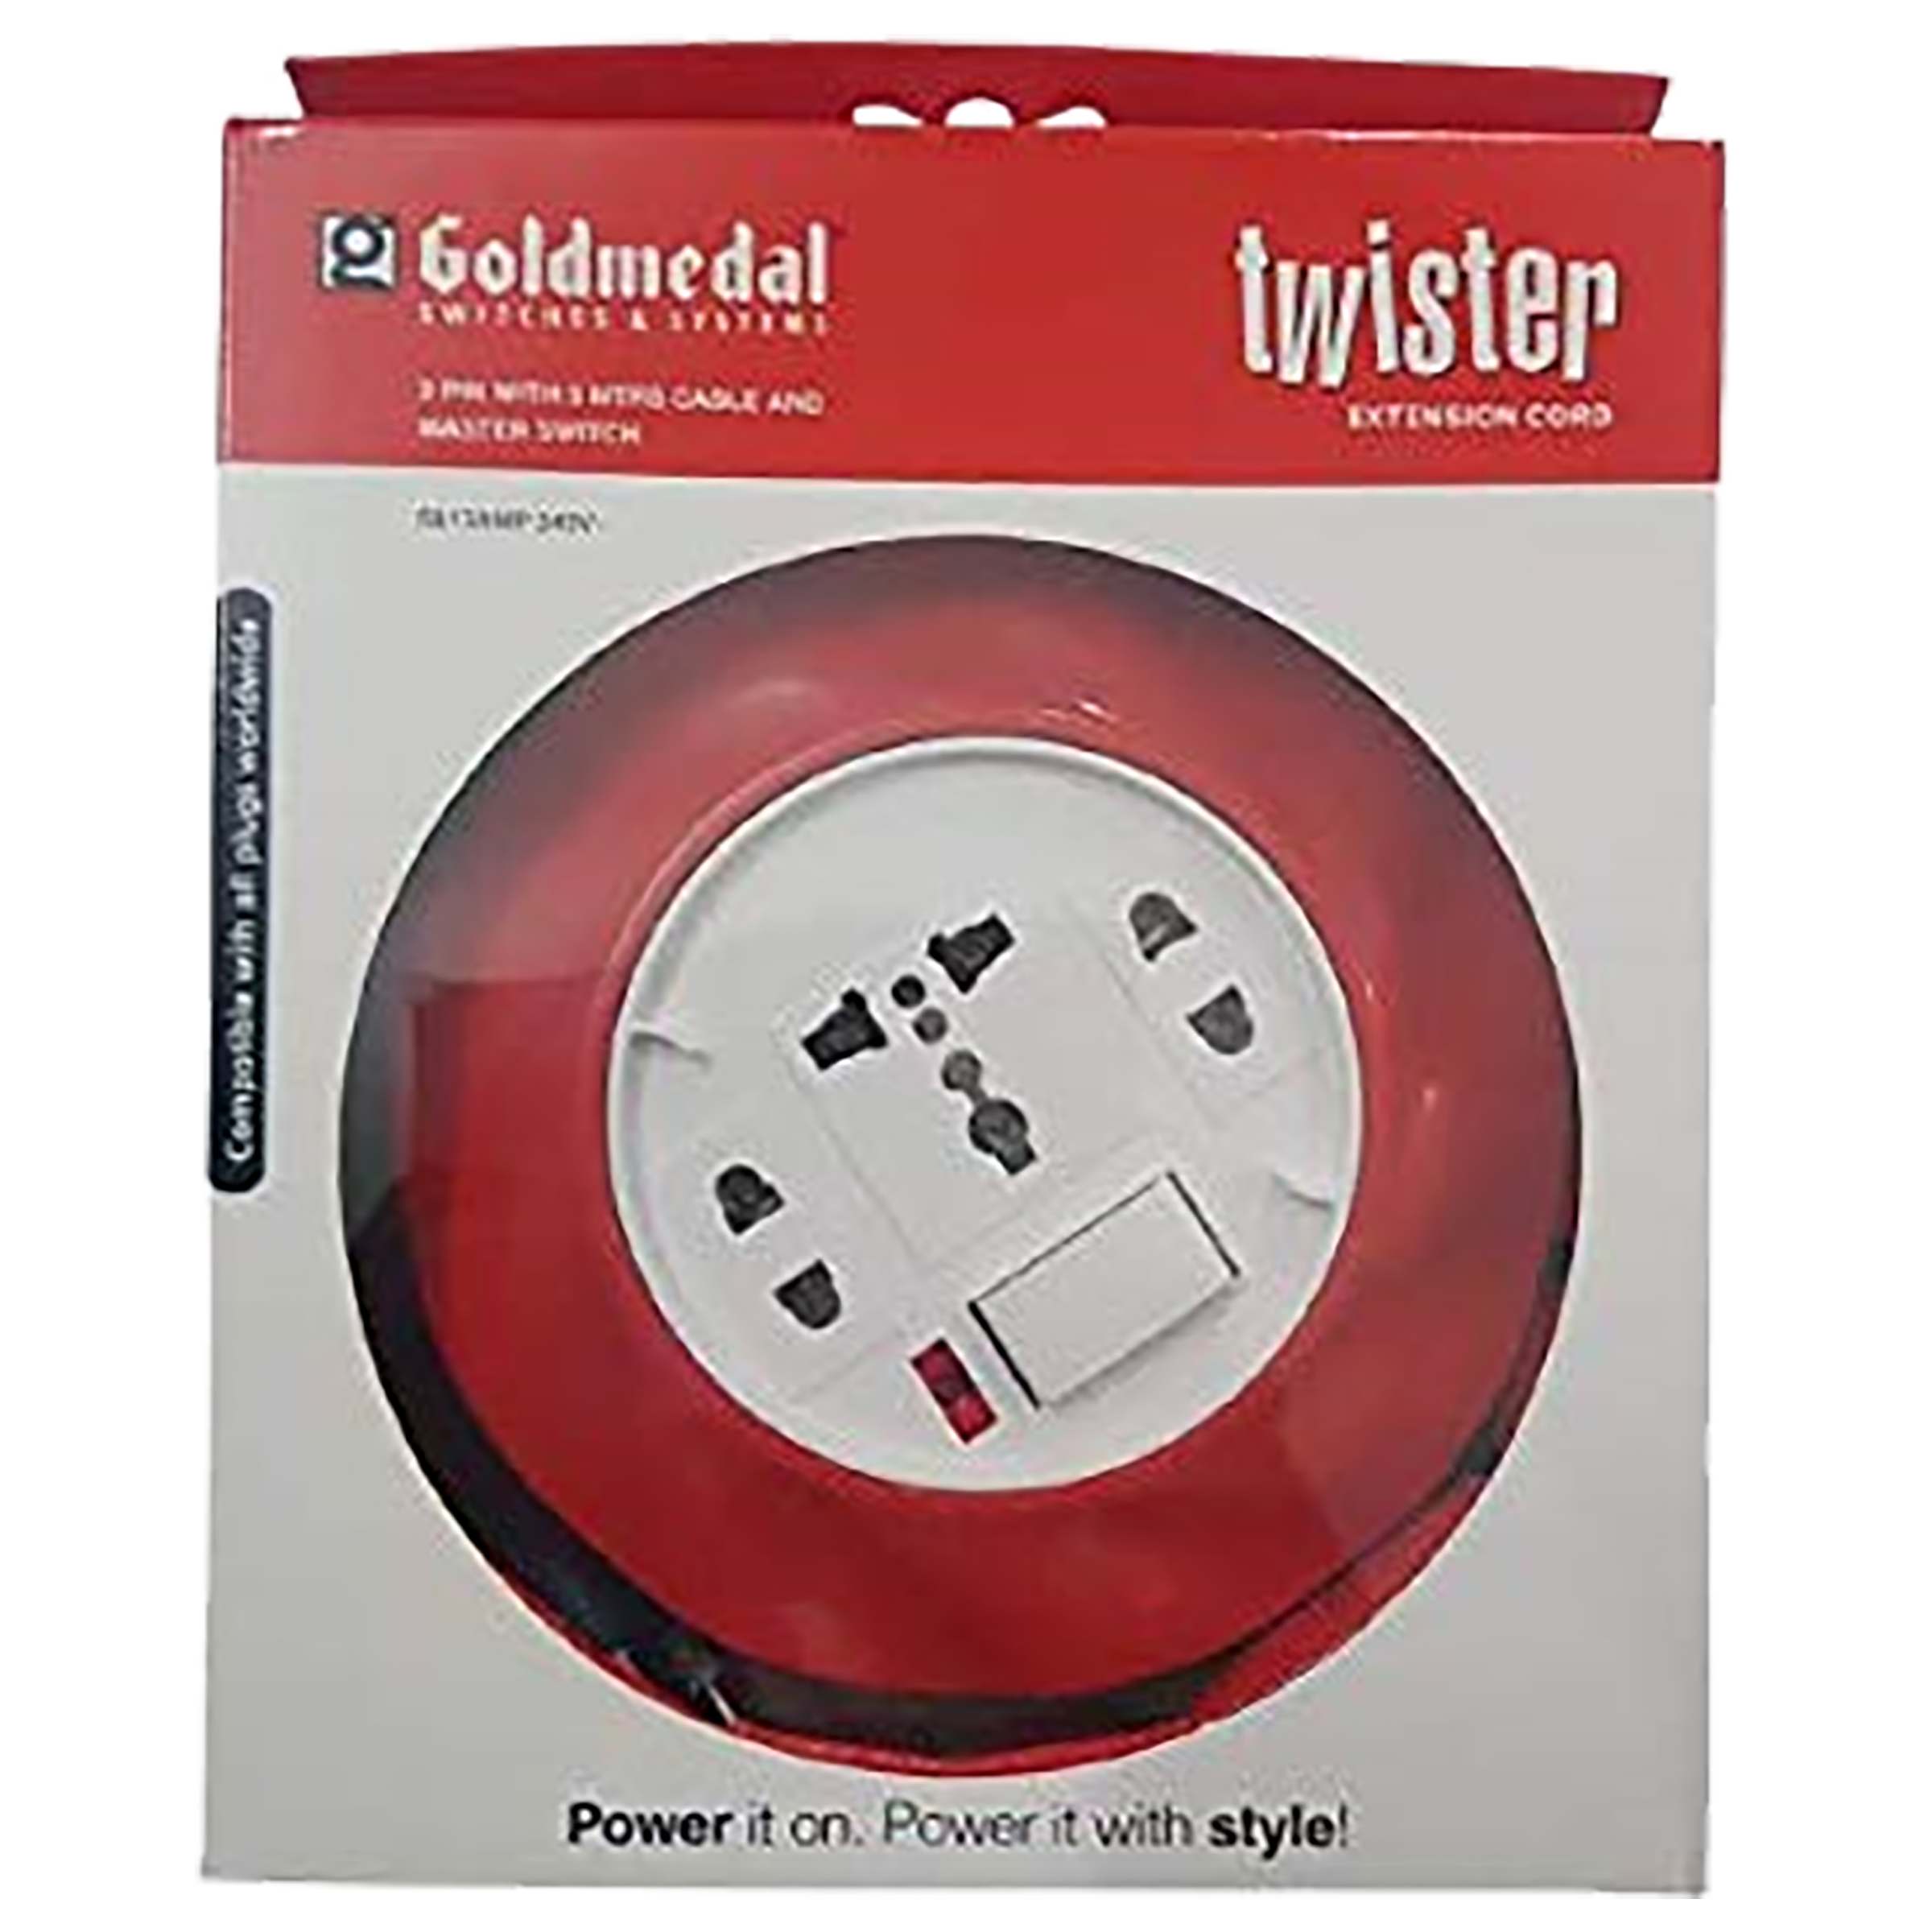 Goldmedal Twister 10 Amp 3 Sockets Extension Board 5 Meters (High Grade Fire Retardant Plastic, 205122, White/Red)_1